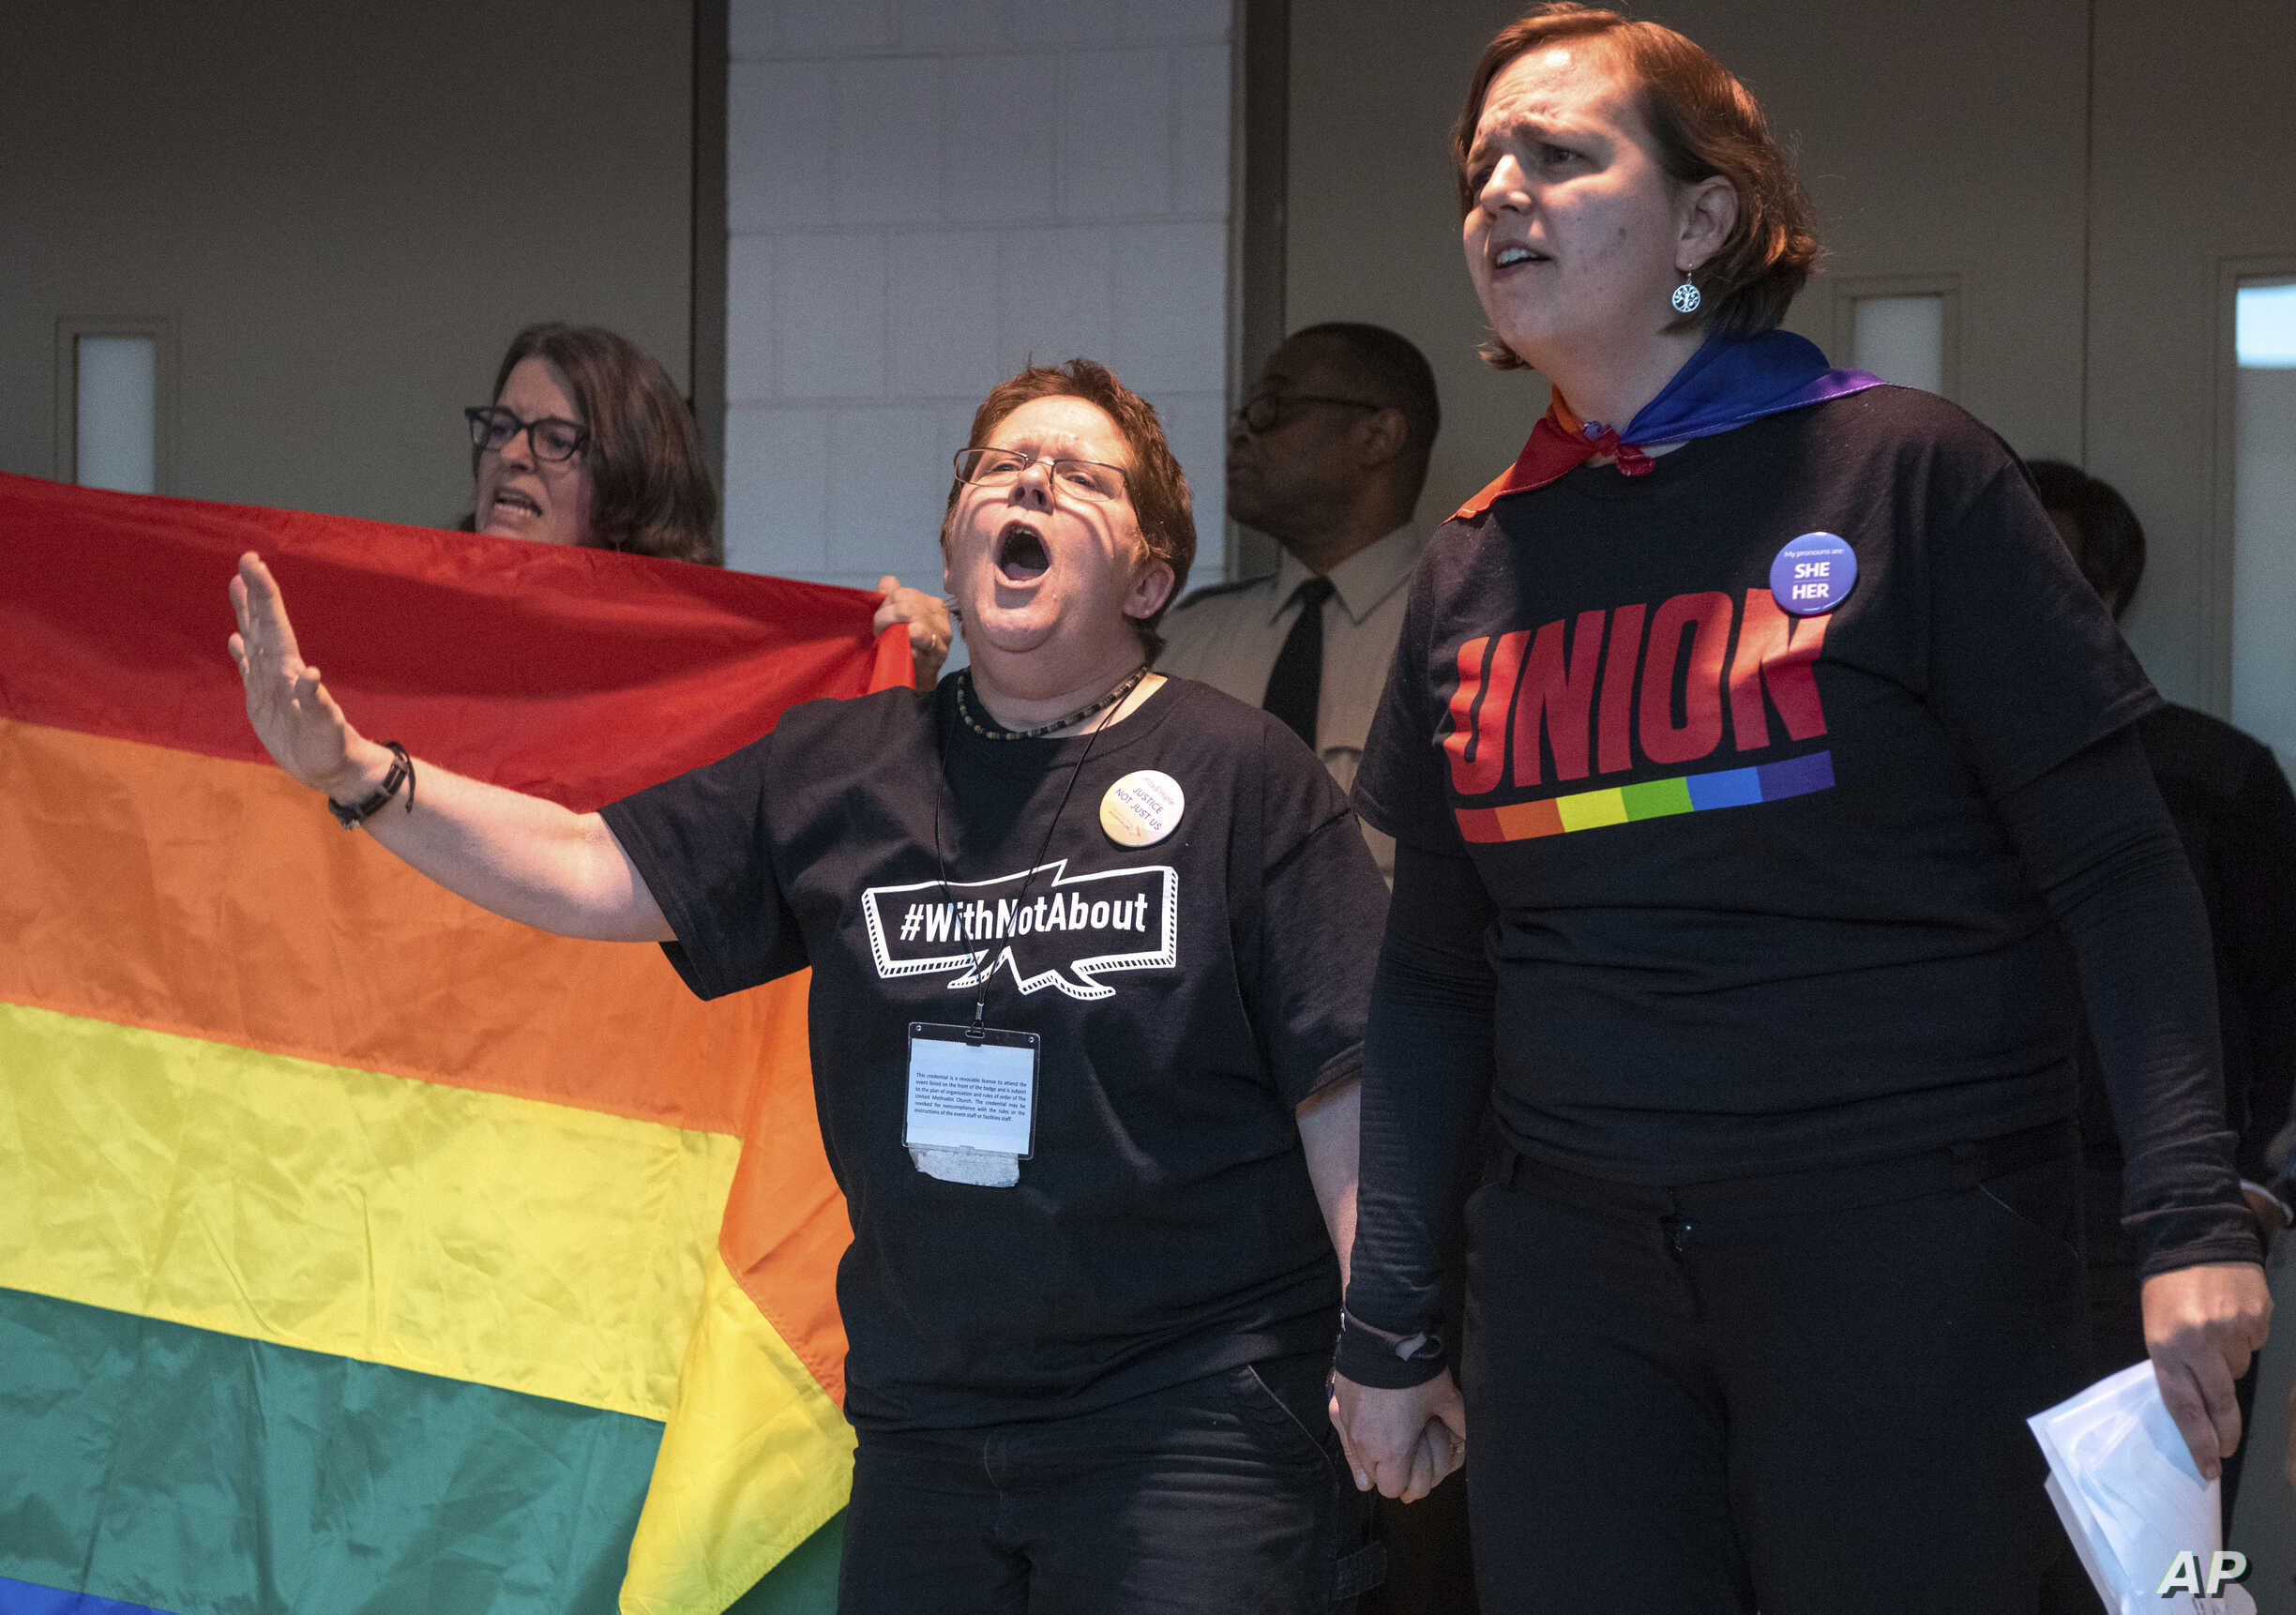 Protesters objecting to the adoption of the Traditional Plan gather and protest outside the United Methodist Church's 2019 Special Session of the General Conference in St. Louis, Mo., Feb. 26, 2019.